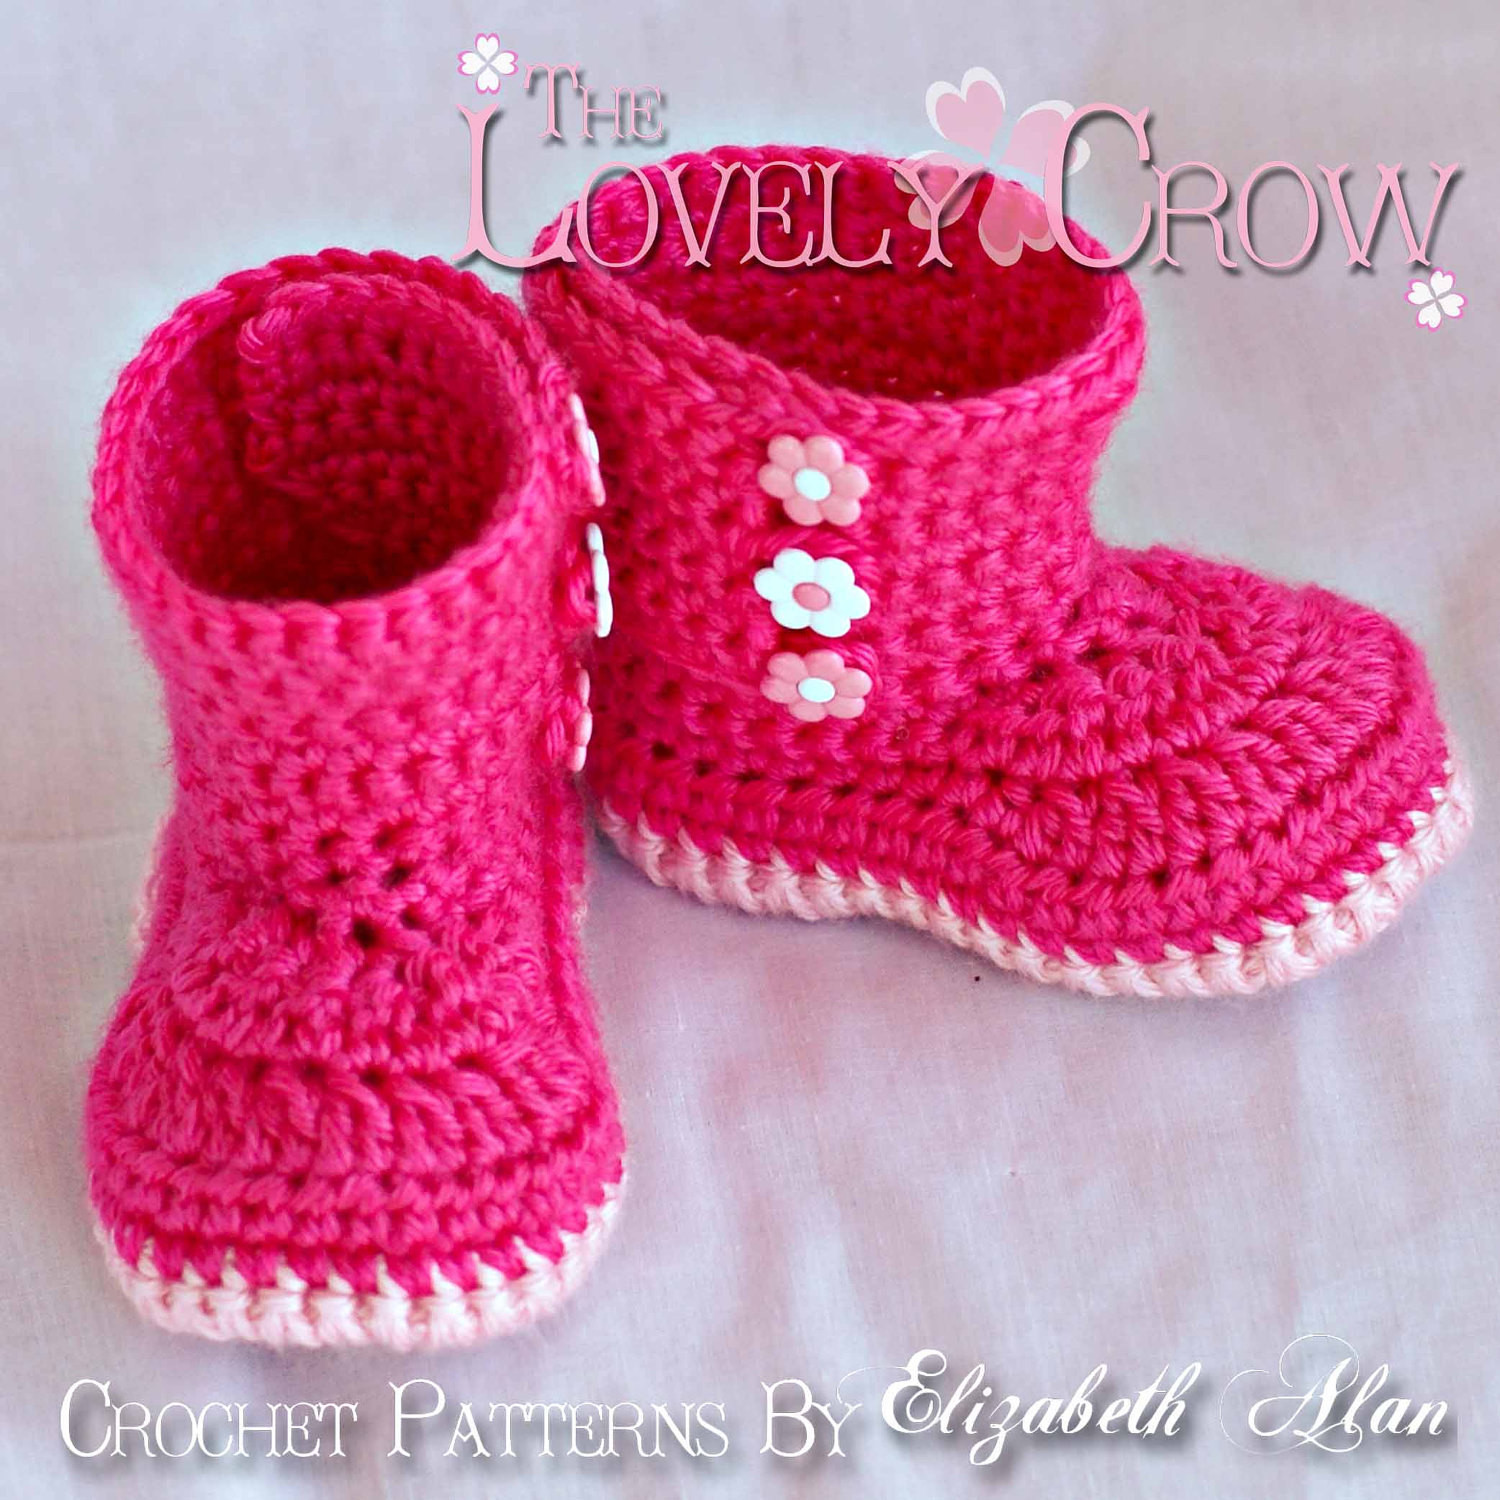 Crochet Baby Booties Awesome Booties Crochet Pattern Boots for Baby Garden Boots Digital Of Crochet Baby Booties Fresh Crochet Baby Mary Jane Booties Free Patterns